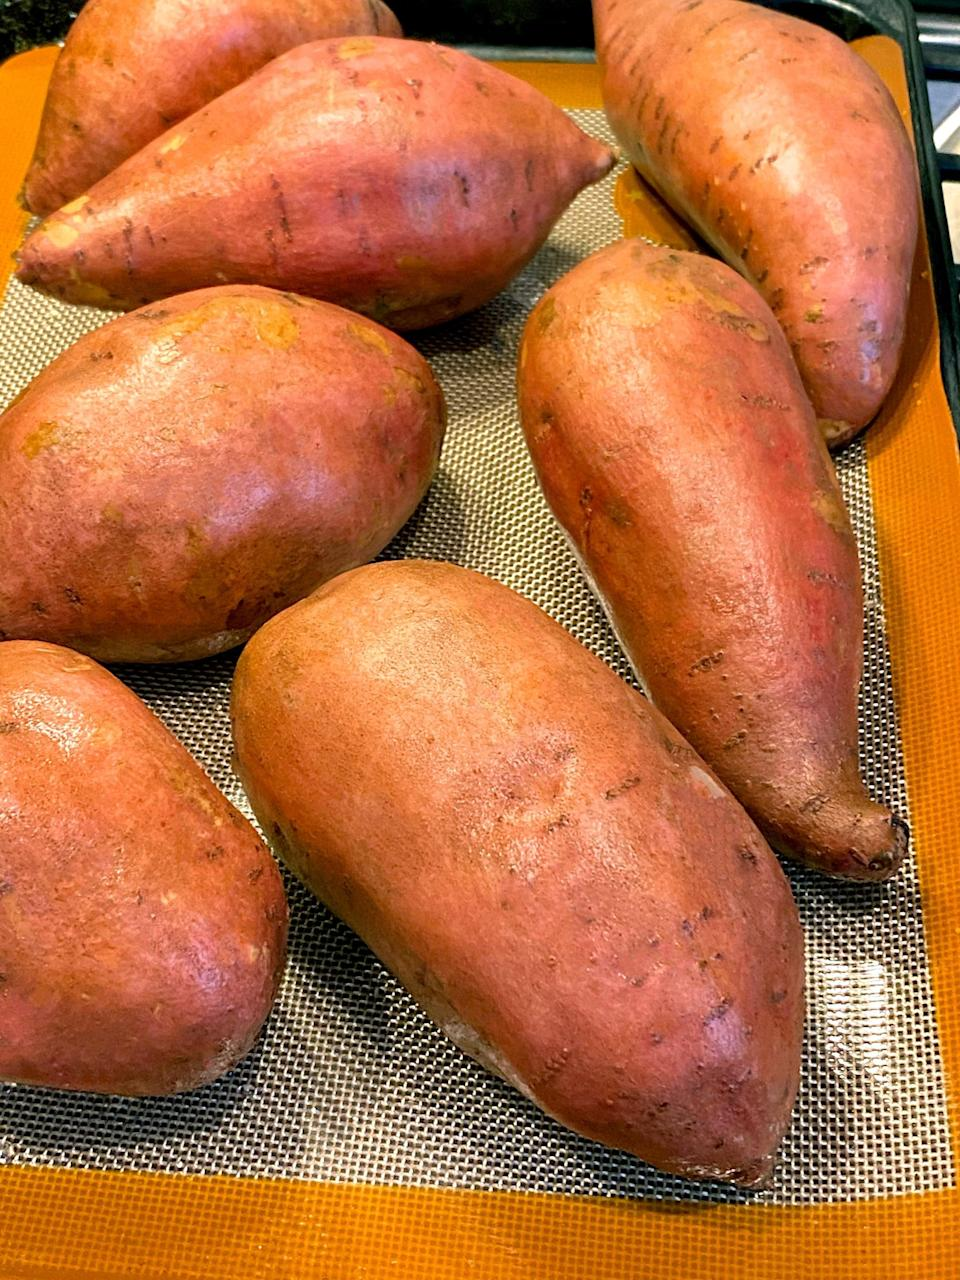 <p>With benefits to my energy levels, digestion, decreased sugar cravings and looking leaner, and the fact that sweet potatoes are absolutely delicious, yes, I'm definitely going to continue eating sweet potatoes regularly. </p> <p>I like to roast a big batch twice a week so I have some for me and some for family dinners. I wash the potatoes, leave them whole (I don't even poke holes in them!), and bake them at 400 degrees for about an hour, or until they are soft when I squeeze them. </p> <p>I'll take three glass containers and add one cooked and cooled sweet potato to each of them with about a pound of frozen veggies. So with hardly any effort at all, three simple and satiating lunches are meal-prepped!</p>